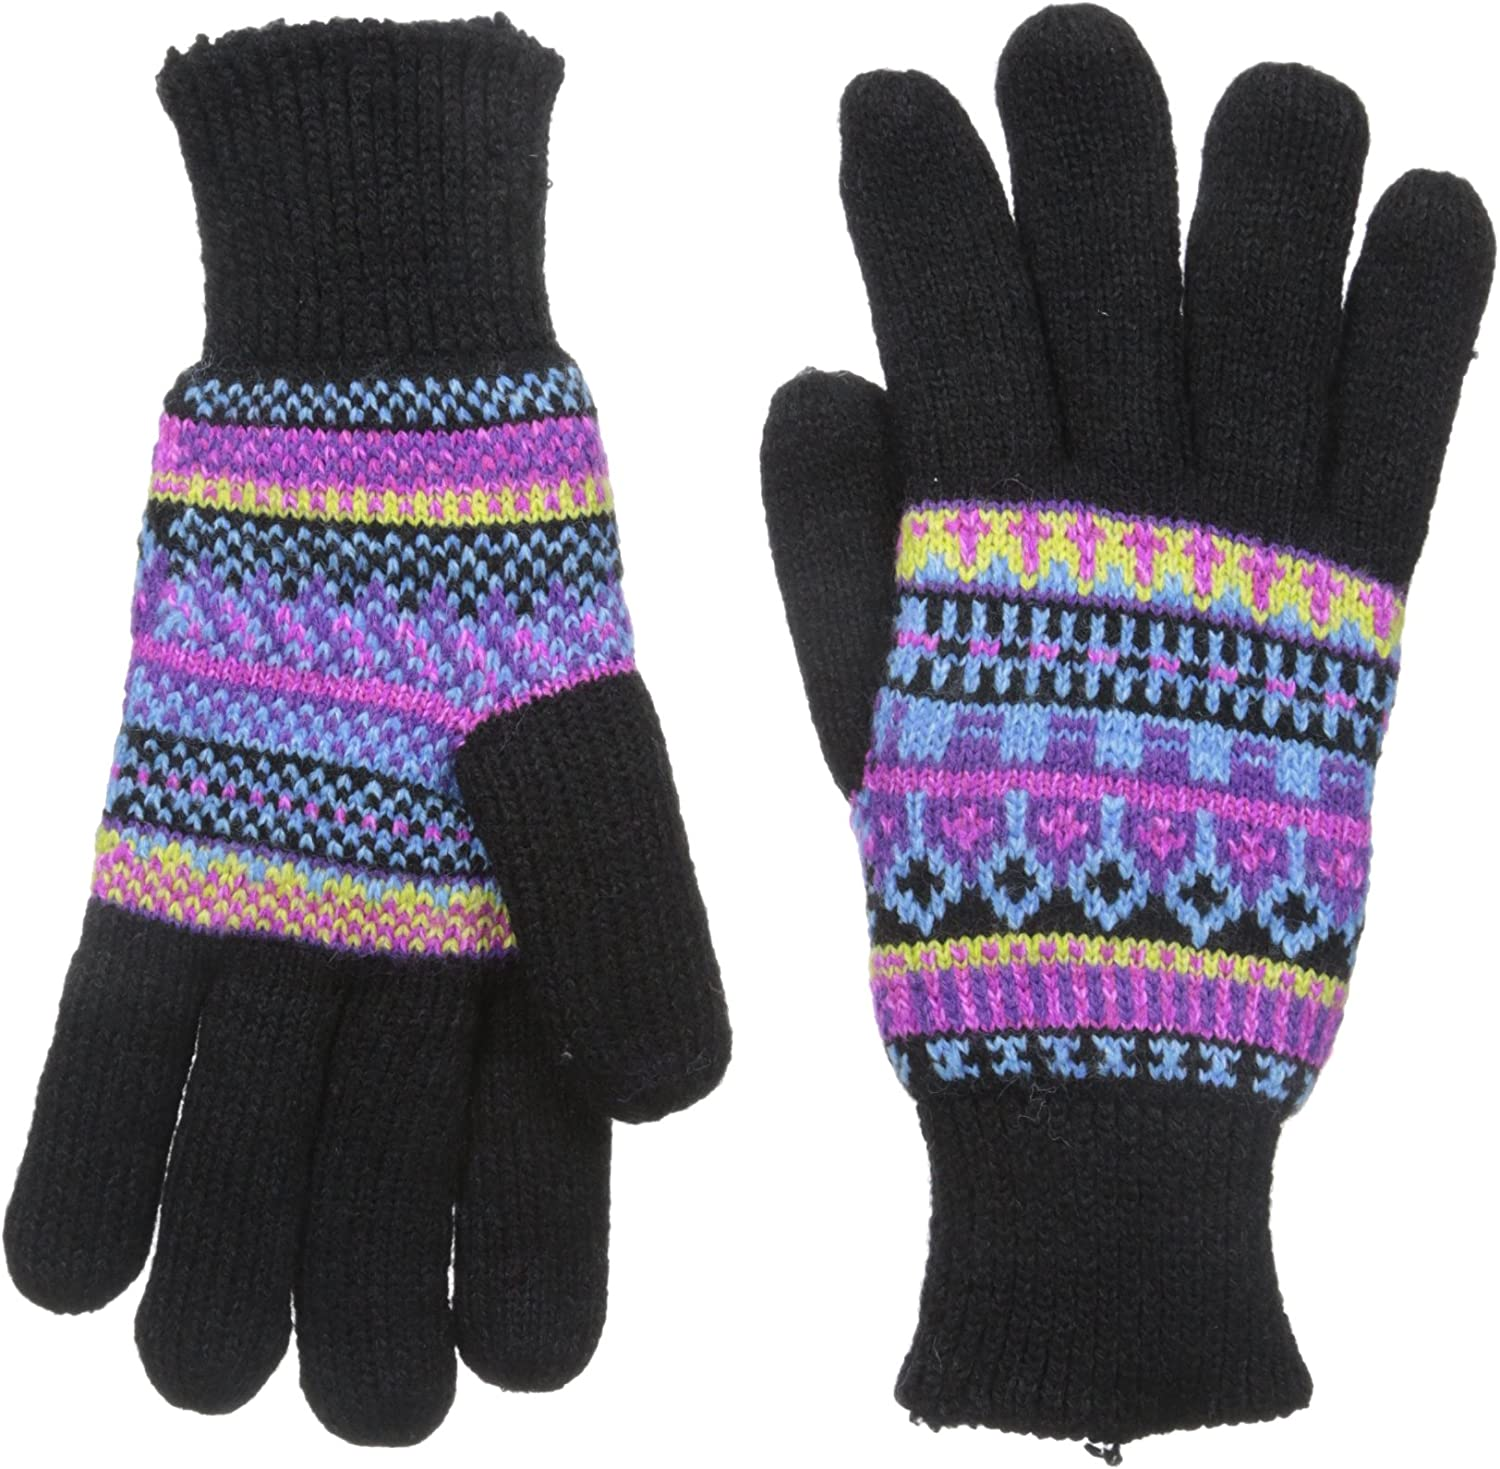 Ladies Mens Black Fairisle Touch Screen Smart Knitted Gloves Winter Warm Adults